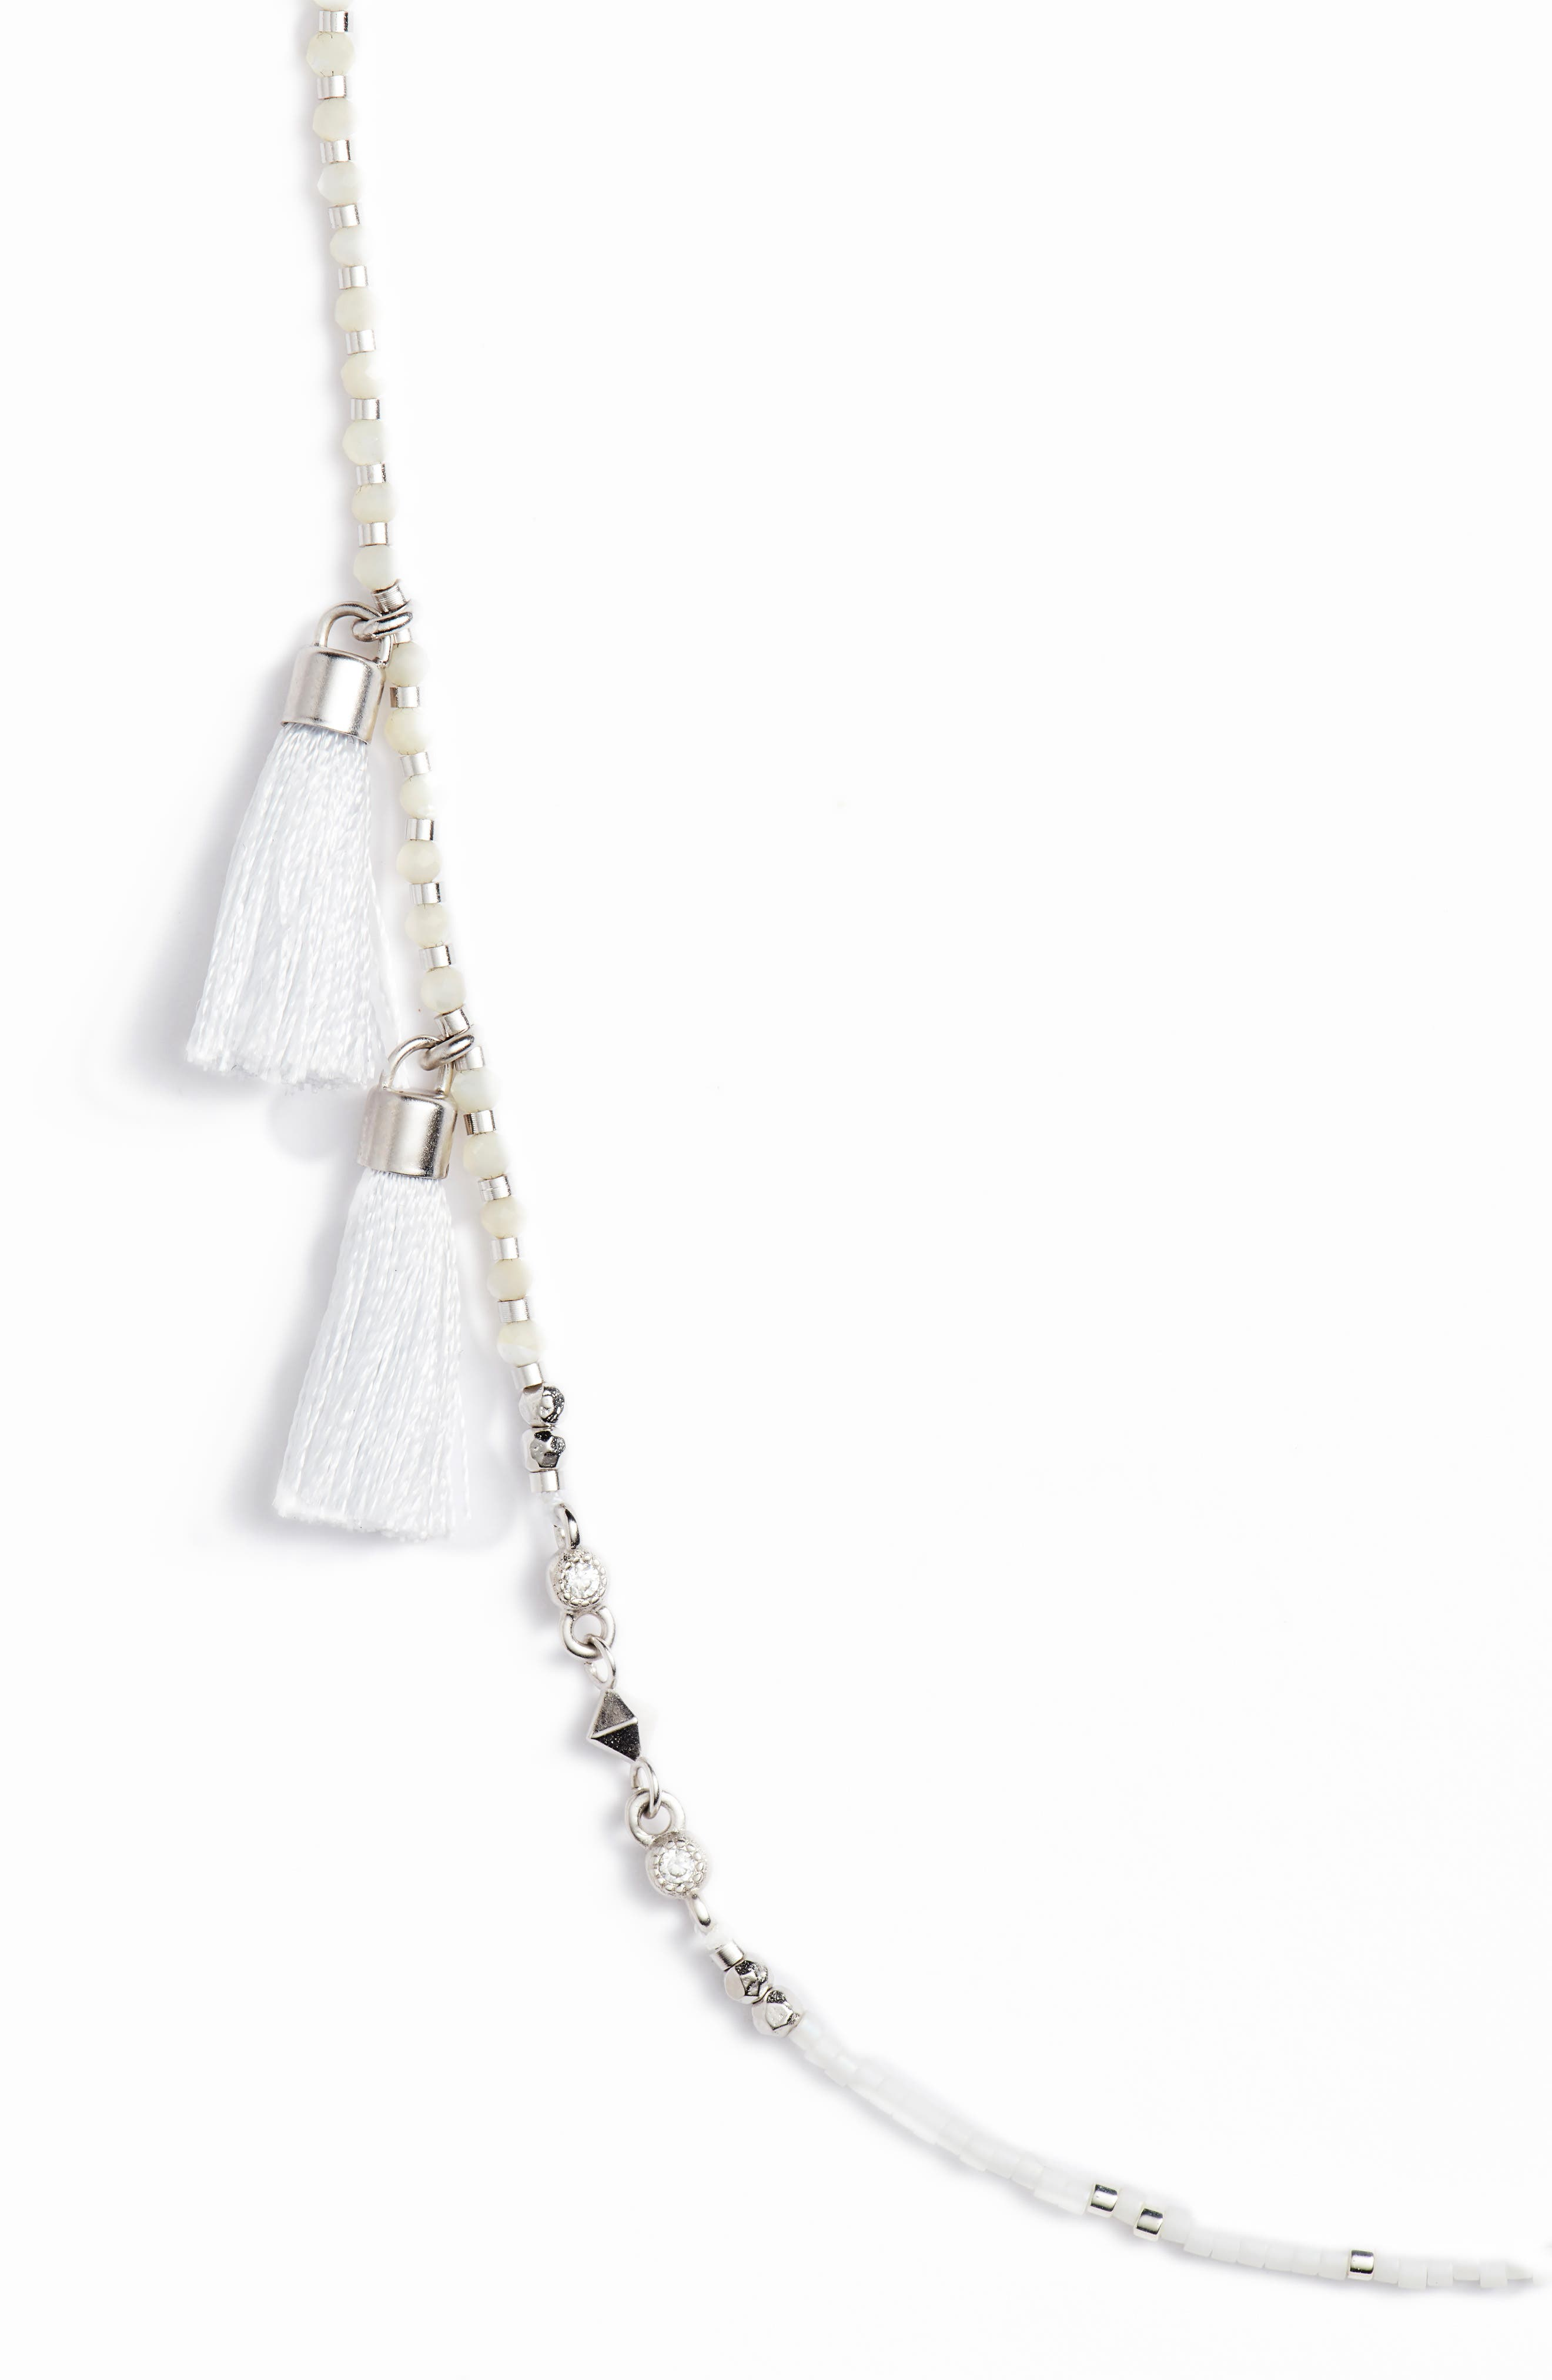 Augusta Tassel Necklace,                             Alternate thumbnail 2, color,                             100